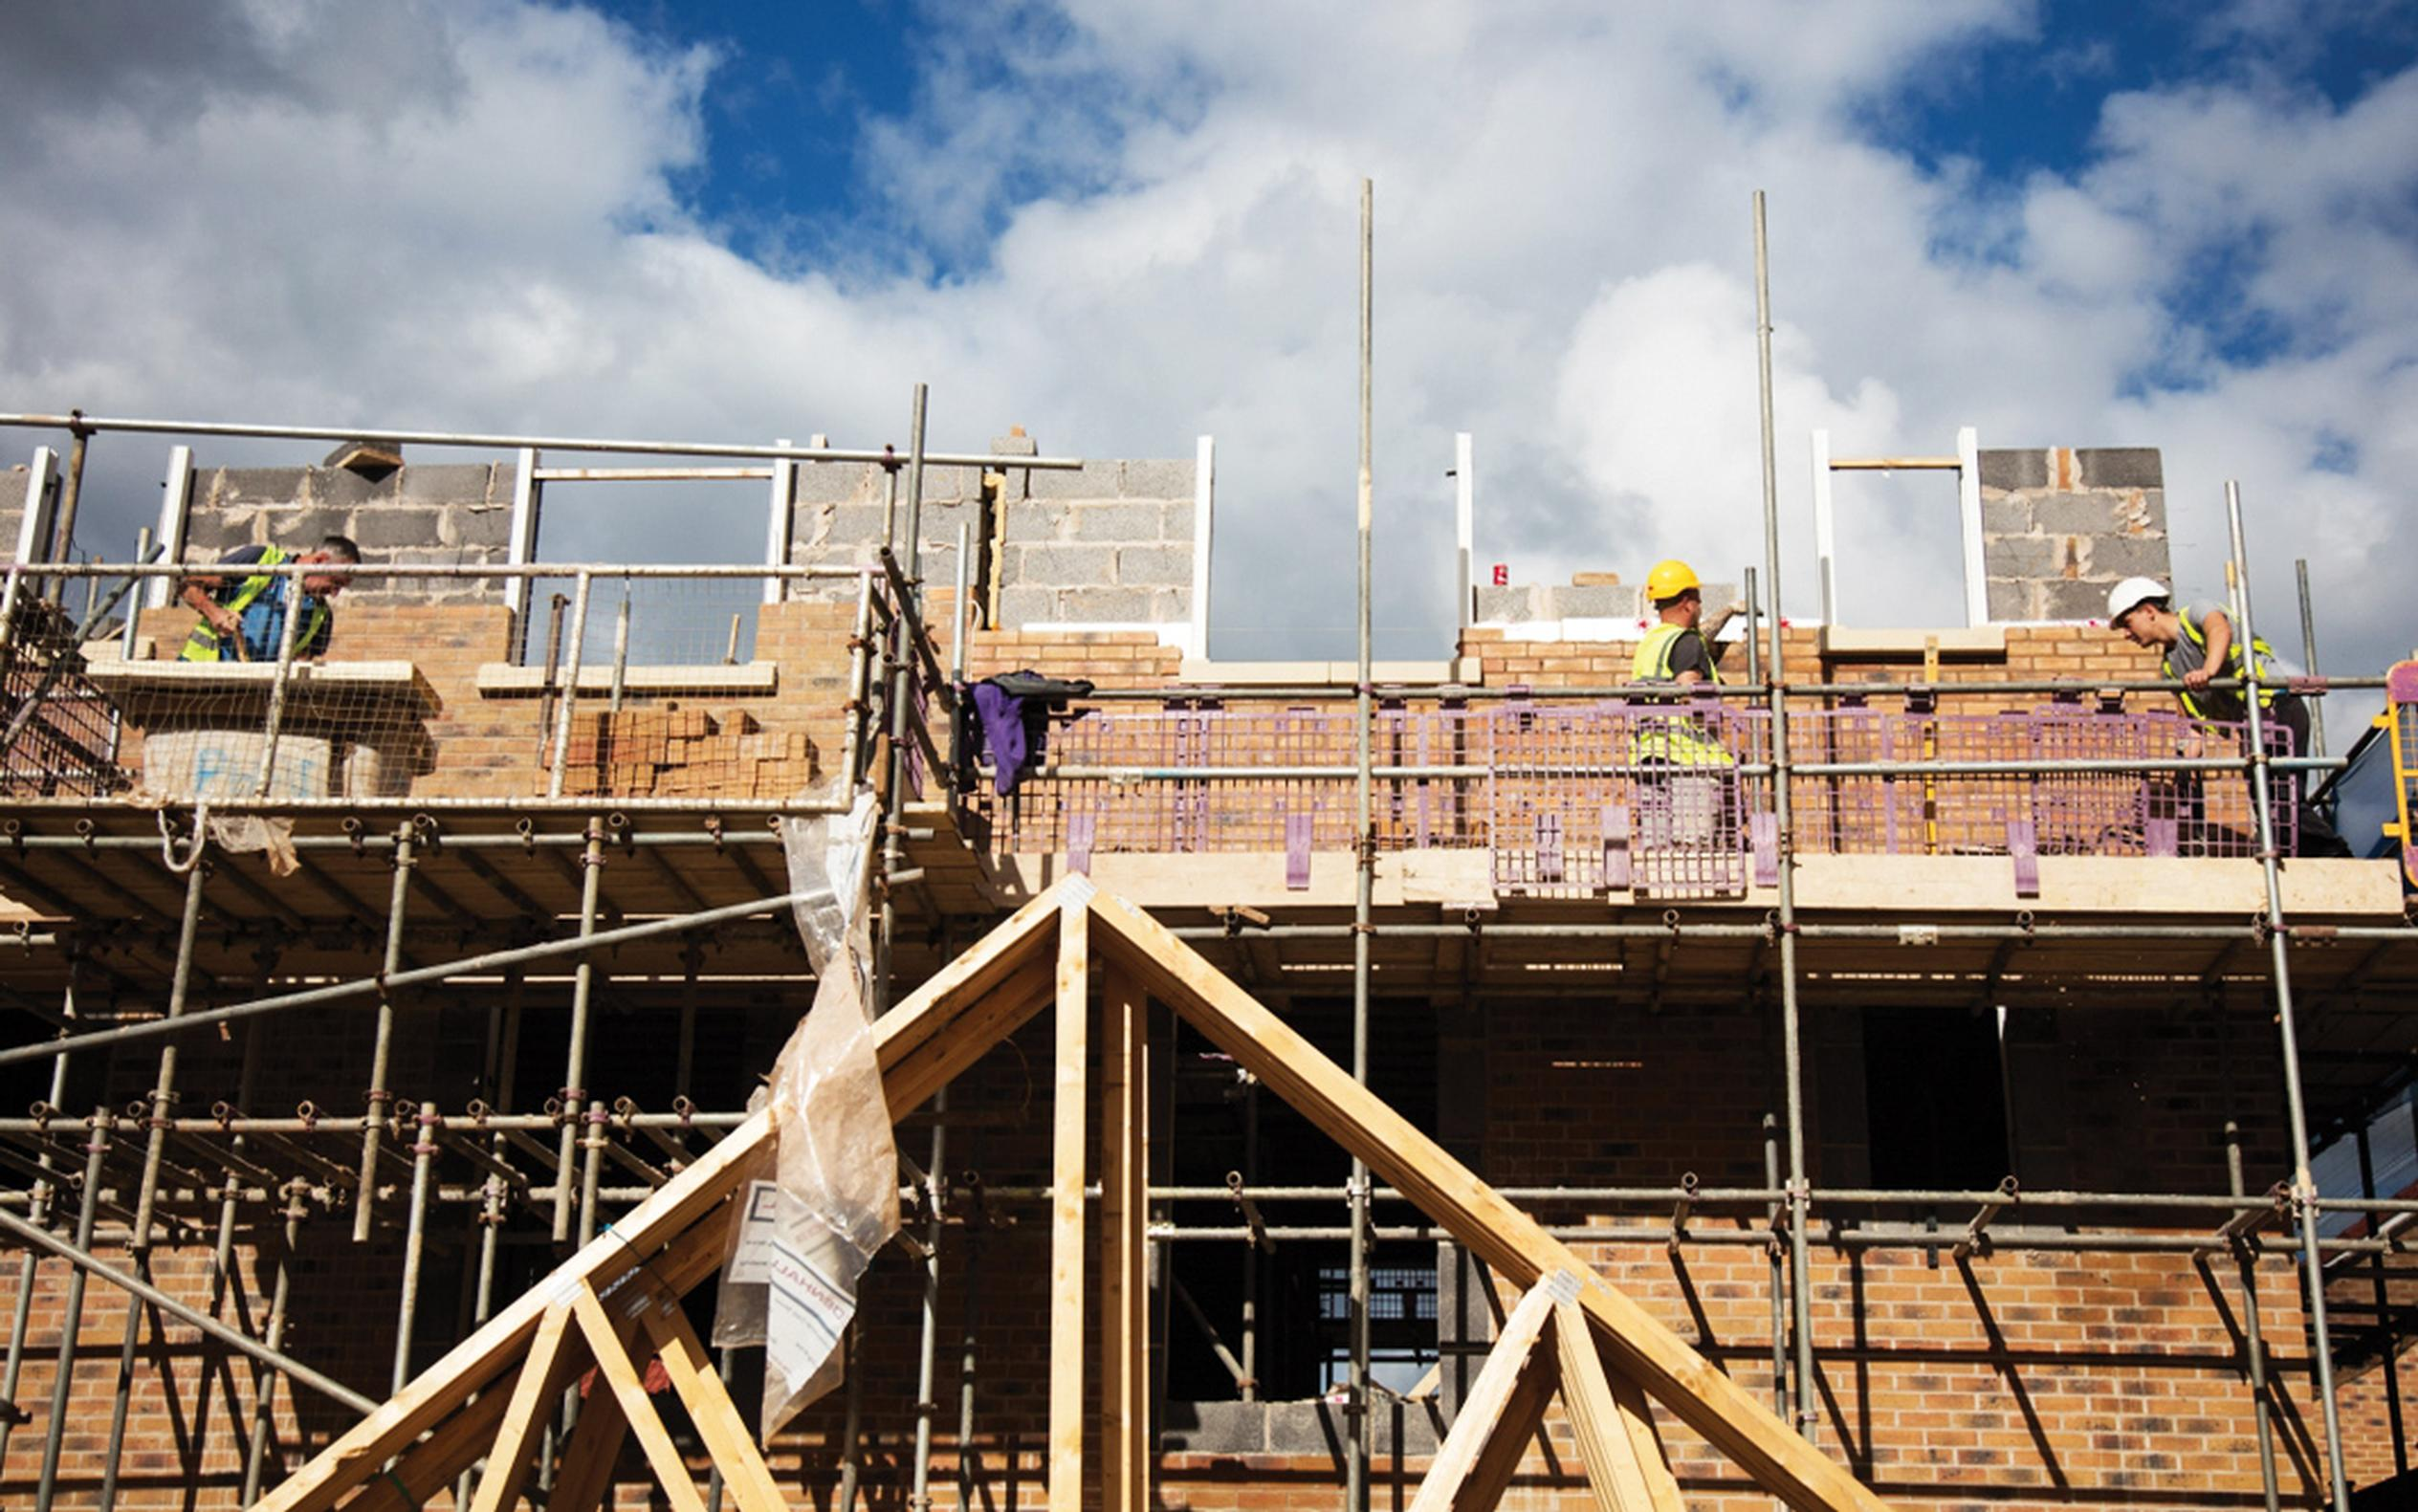 Transport projects eligible for slice of £2.3bn housing fund